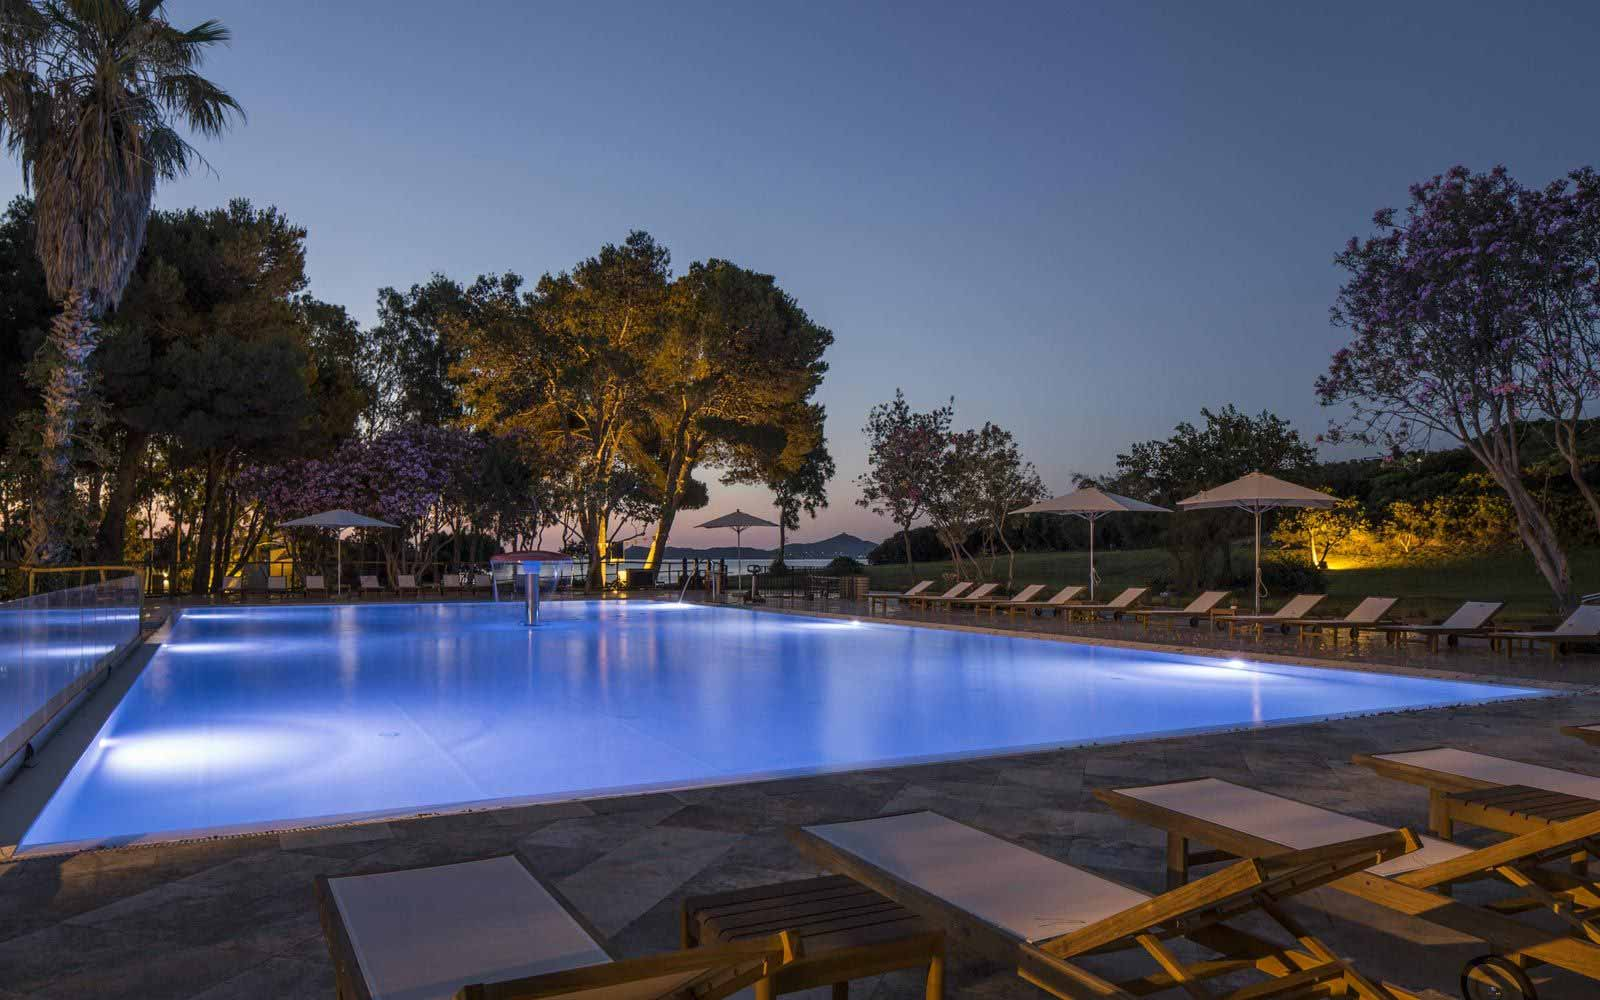 Pool by night at Falkensteiner Resort Capo Boi